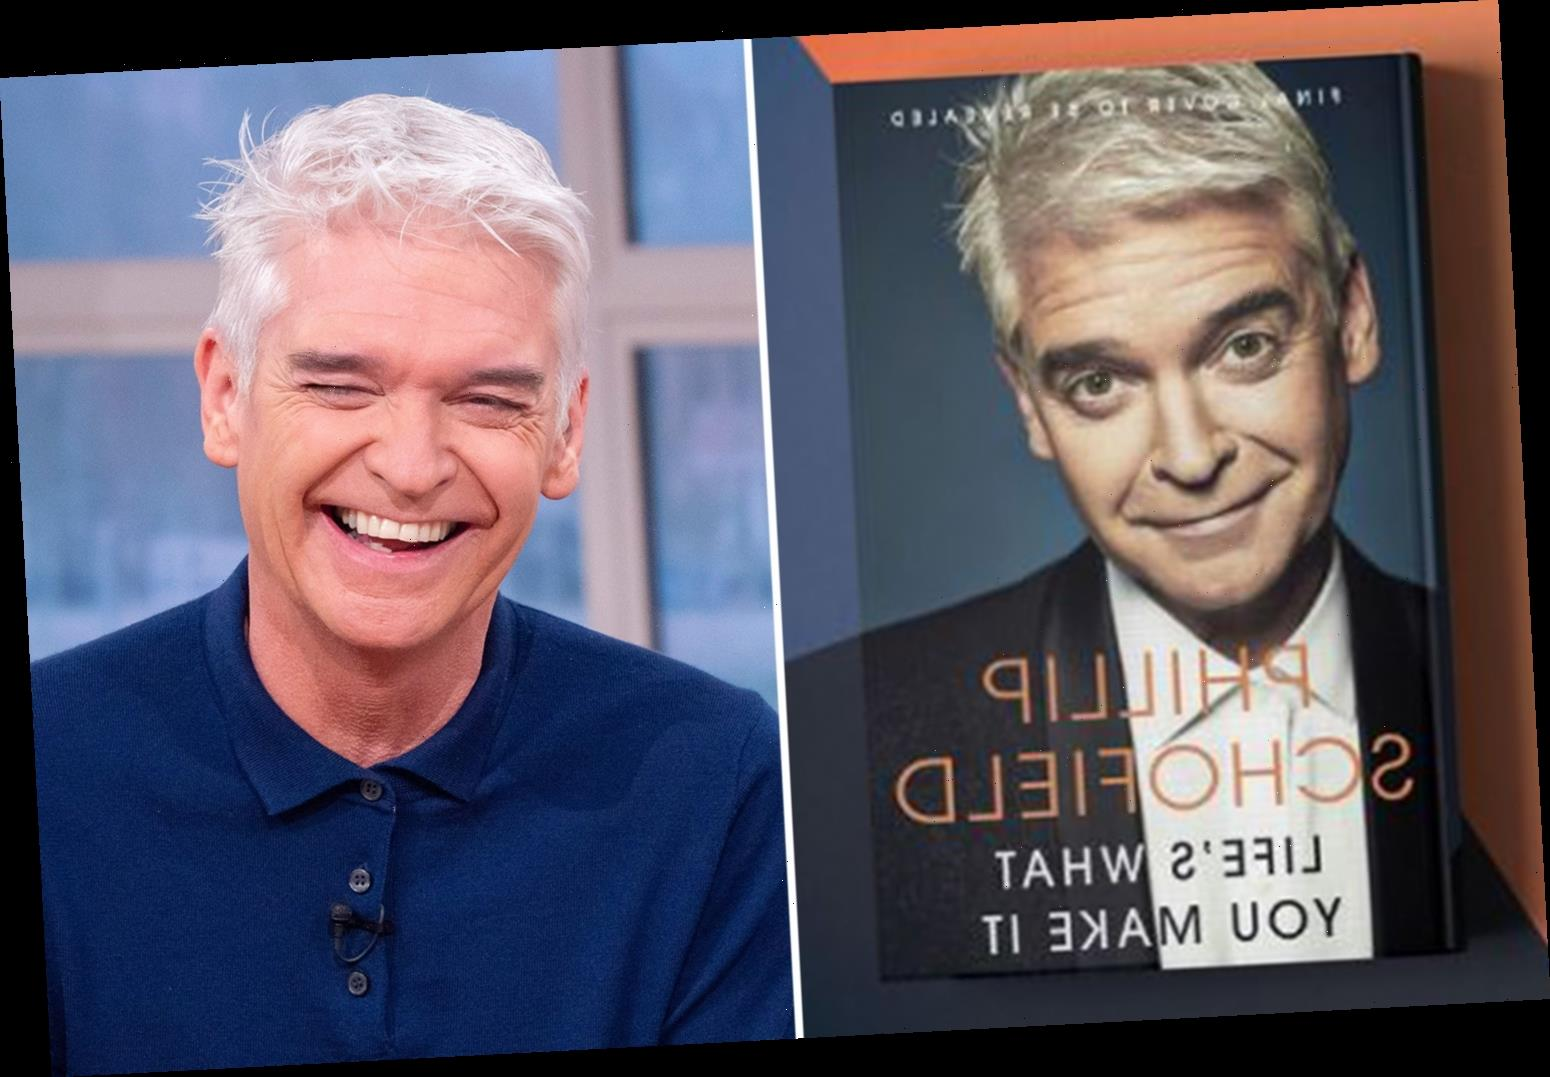 Phillip Schofield reveals he's written an explosive tell-all book after coming out as gay calling it 'deeply emotional'